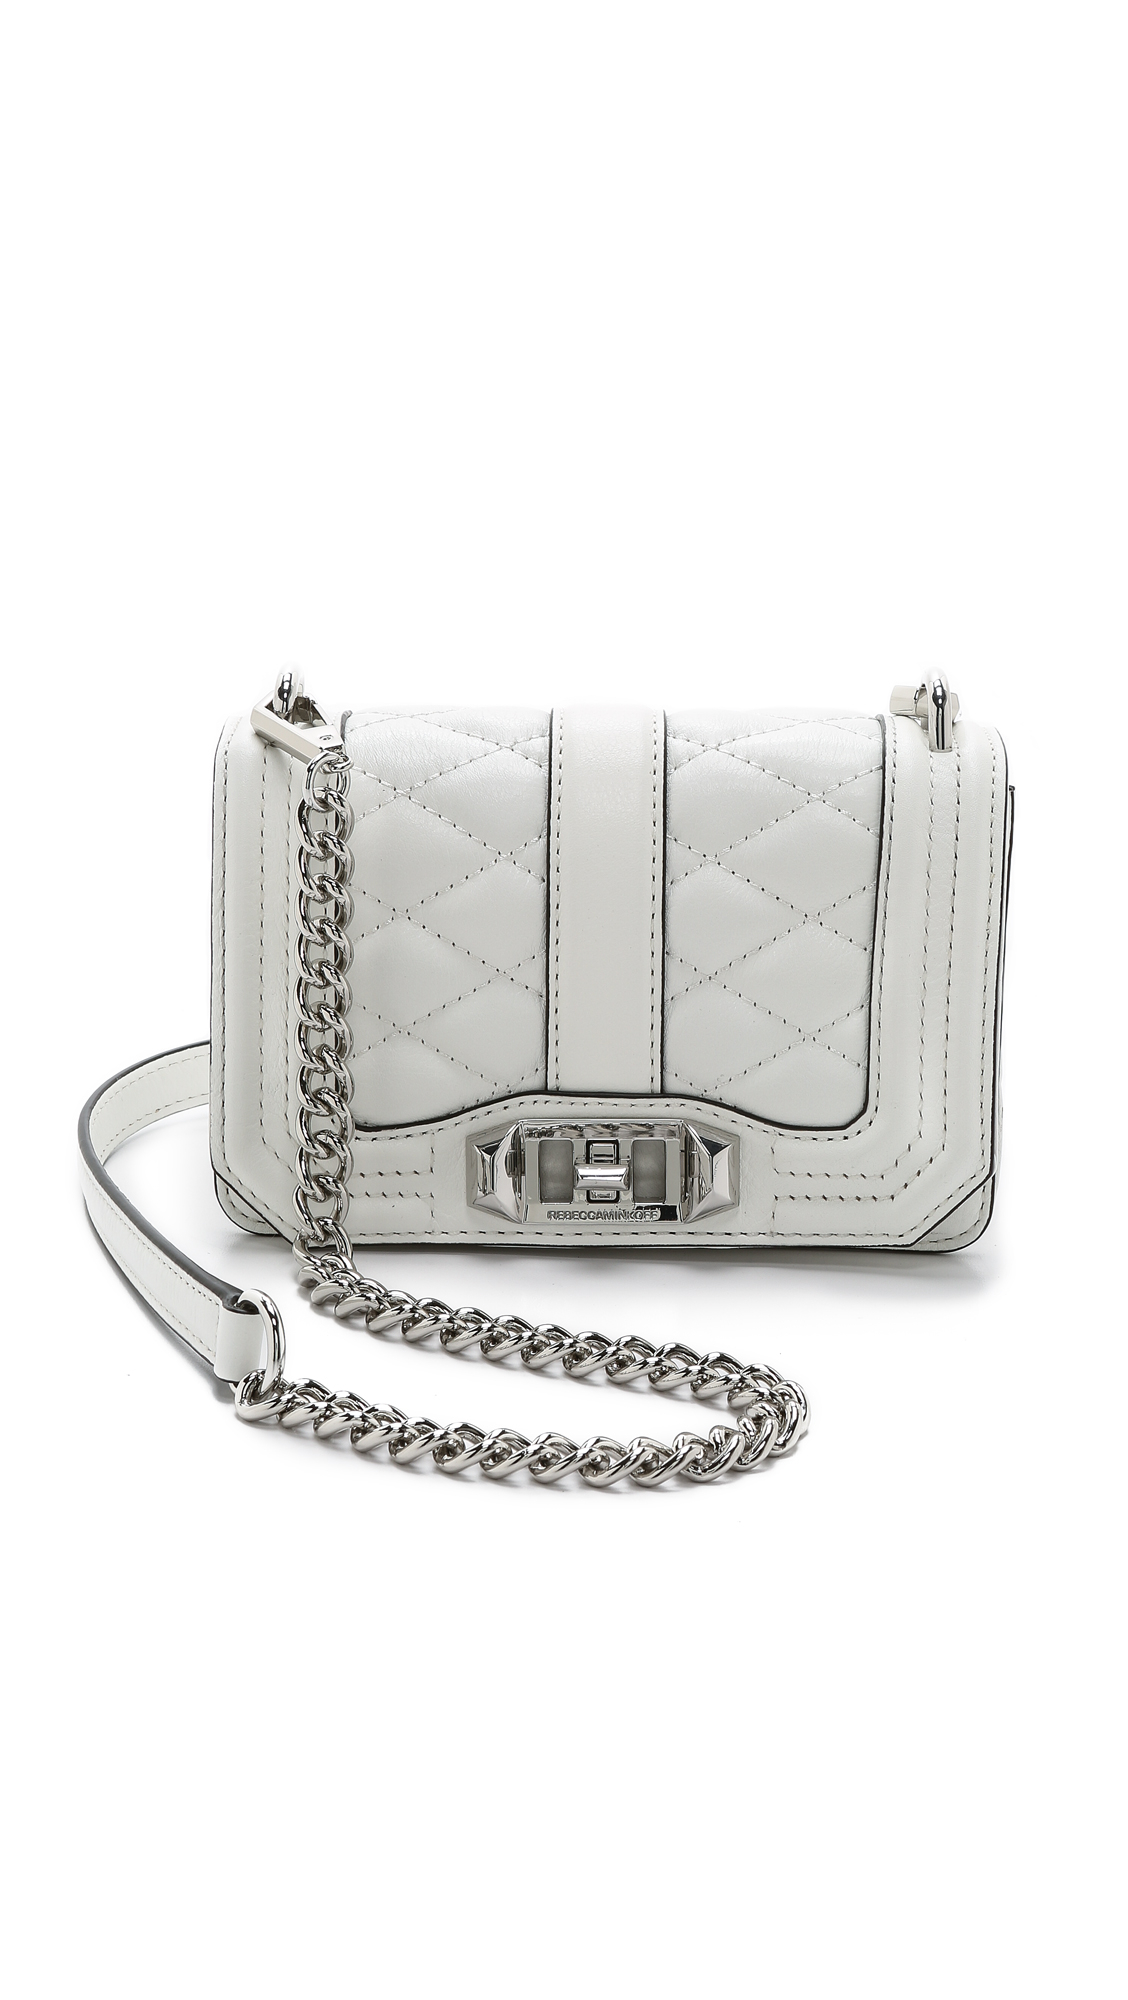 Rebecca Minkoff Mini Love Quilted Crossbody Bag in White